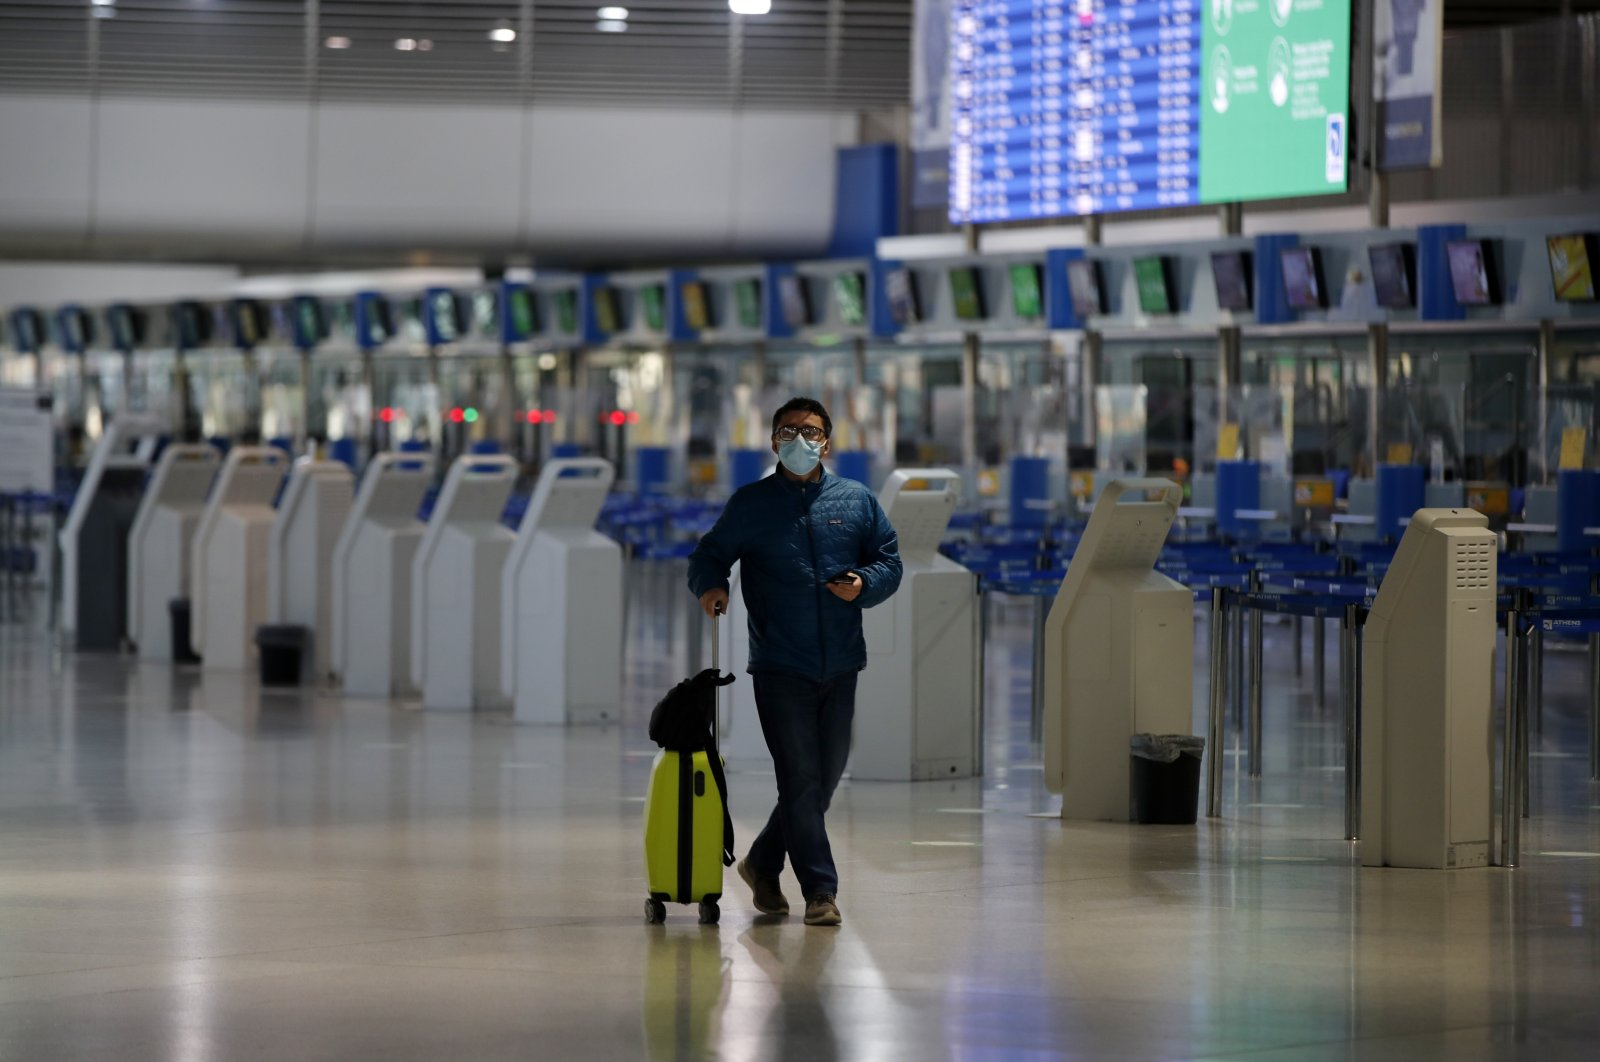 A passenger wearing a face mask to prevent the spread of the new coronavirus walks at the empty Eleftherios Venizelos International Airport during a 24-hour strike in the public sector in Athens, Greece, Oct. 15. 2020. (AP File Photo)